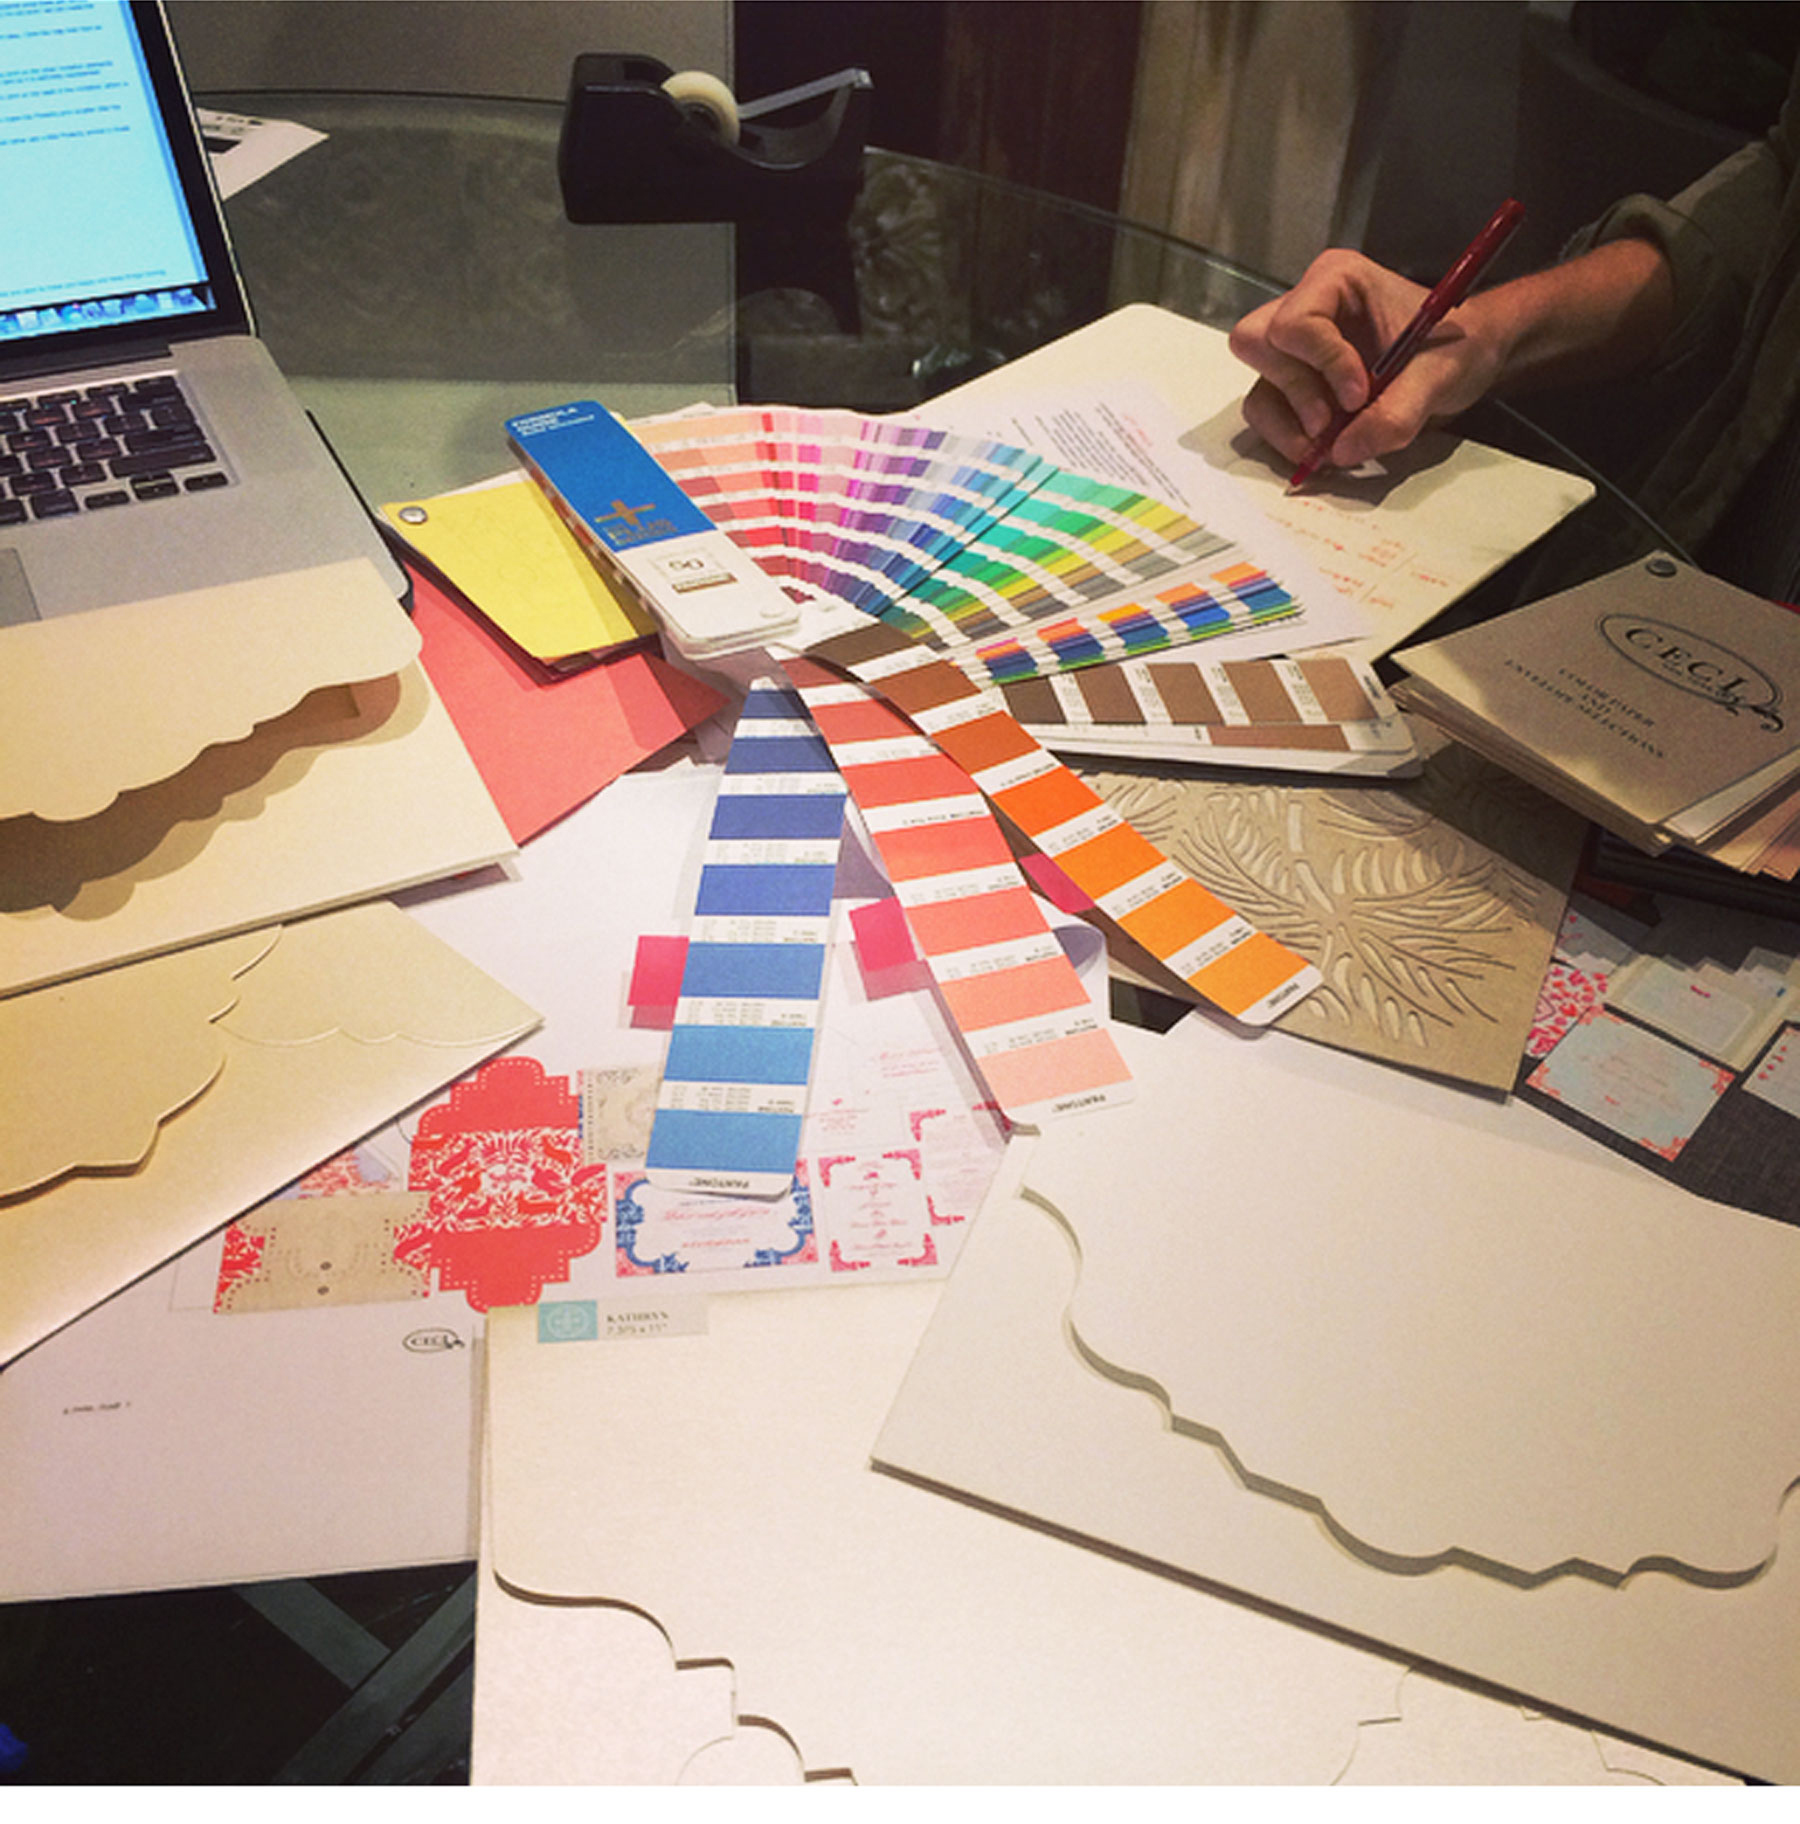 A Day in the Life of Ceci Johnson - 3:30 PM Design meeting. I sit down with my team to flesh out all the possibilities including Pantone colors, style and envelopes to make sure our client sees the best options.